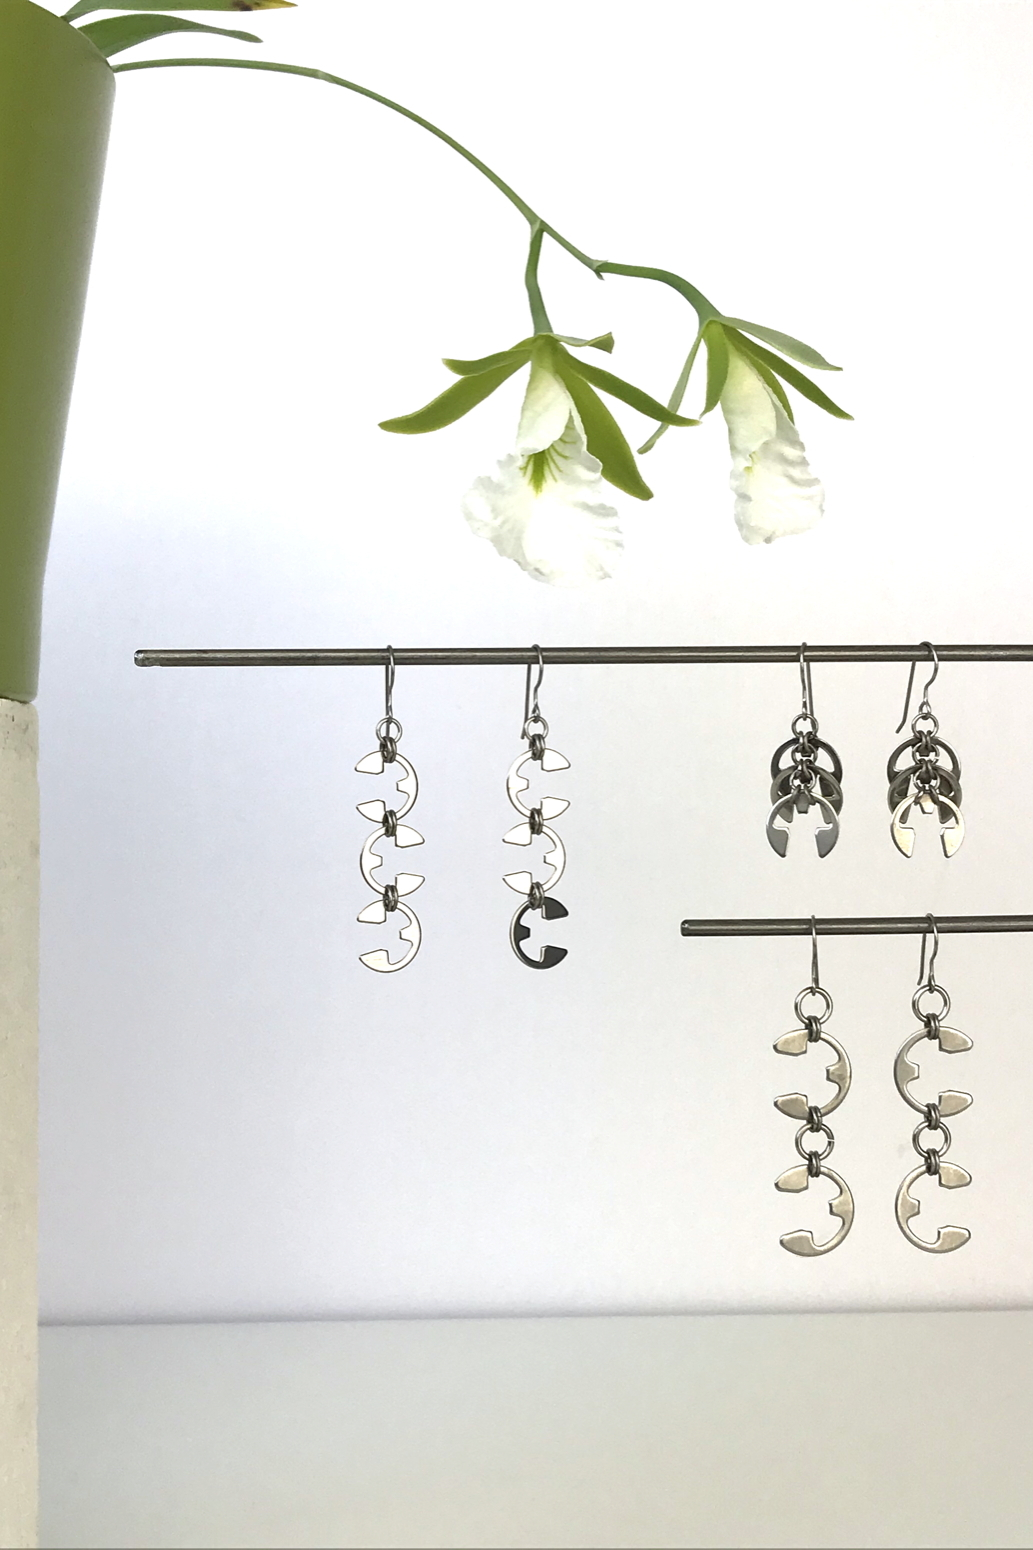 Wraptillion's Vine Earrings, Fir Cones Earrings, and Tendril Earrings with blooming orchid Encyclia mariae.